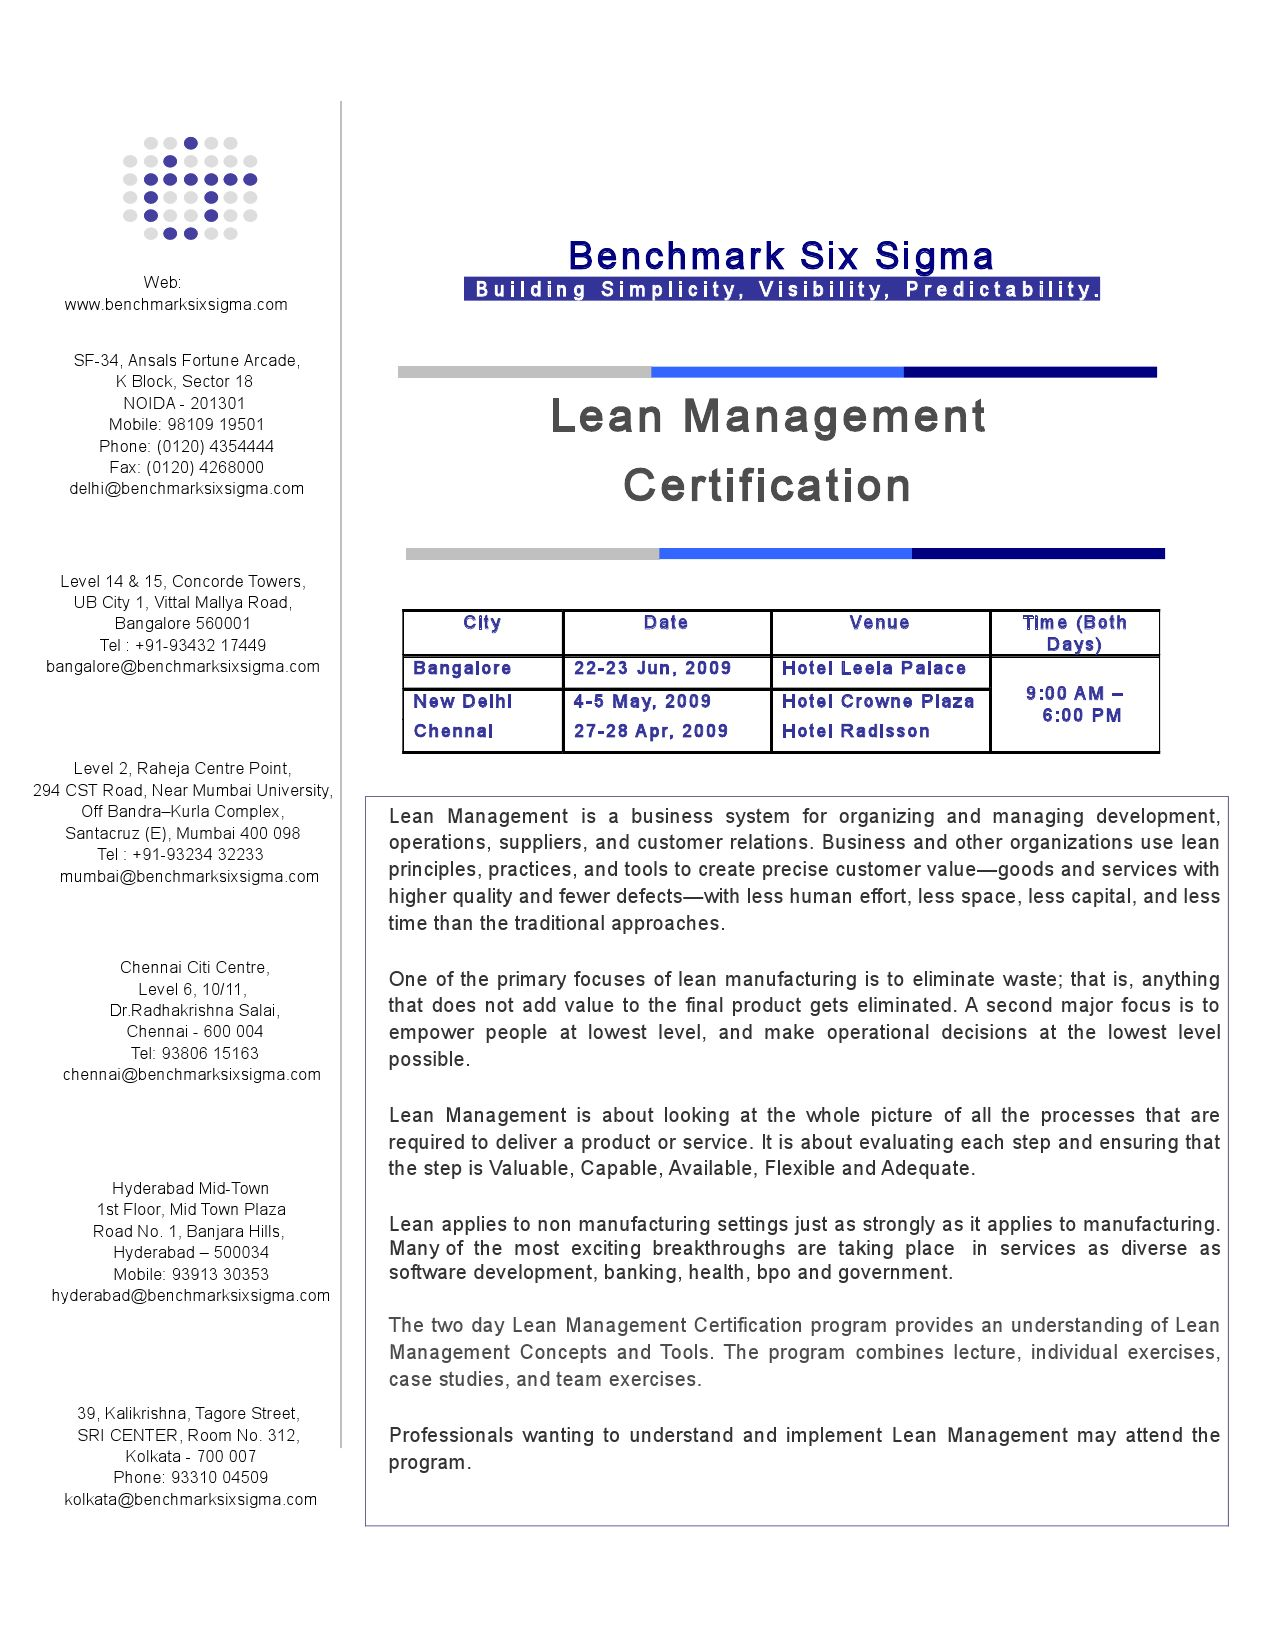 Benchmark Six Sigma Lean Management Training Brochure By Benchmark